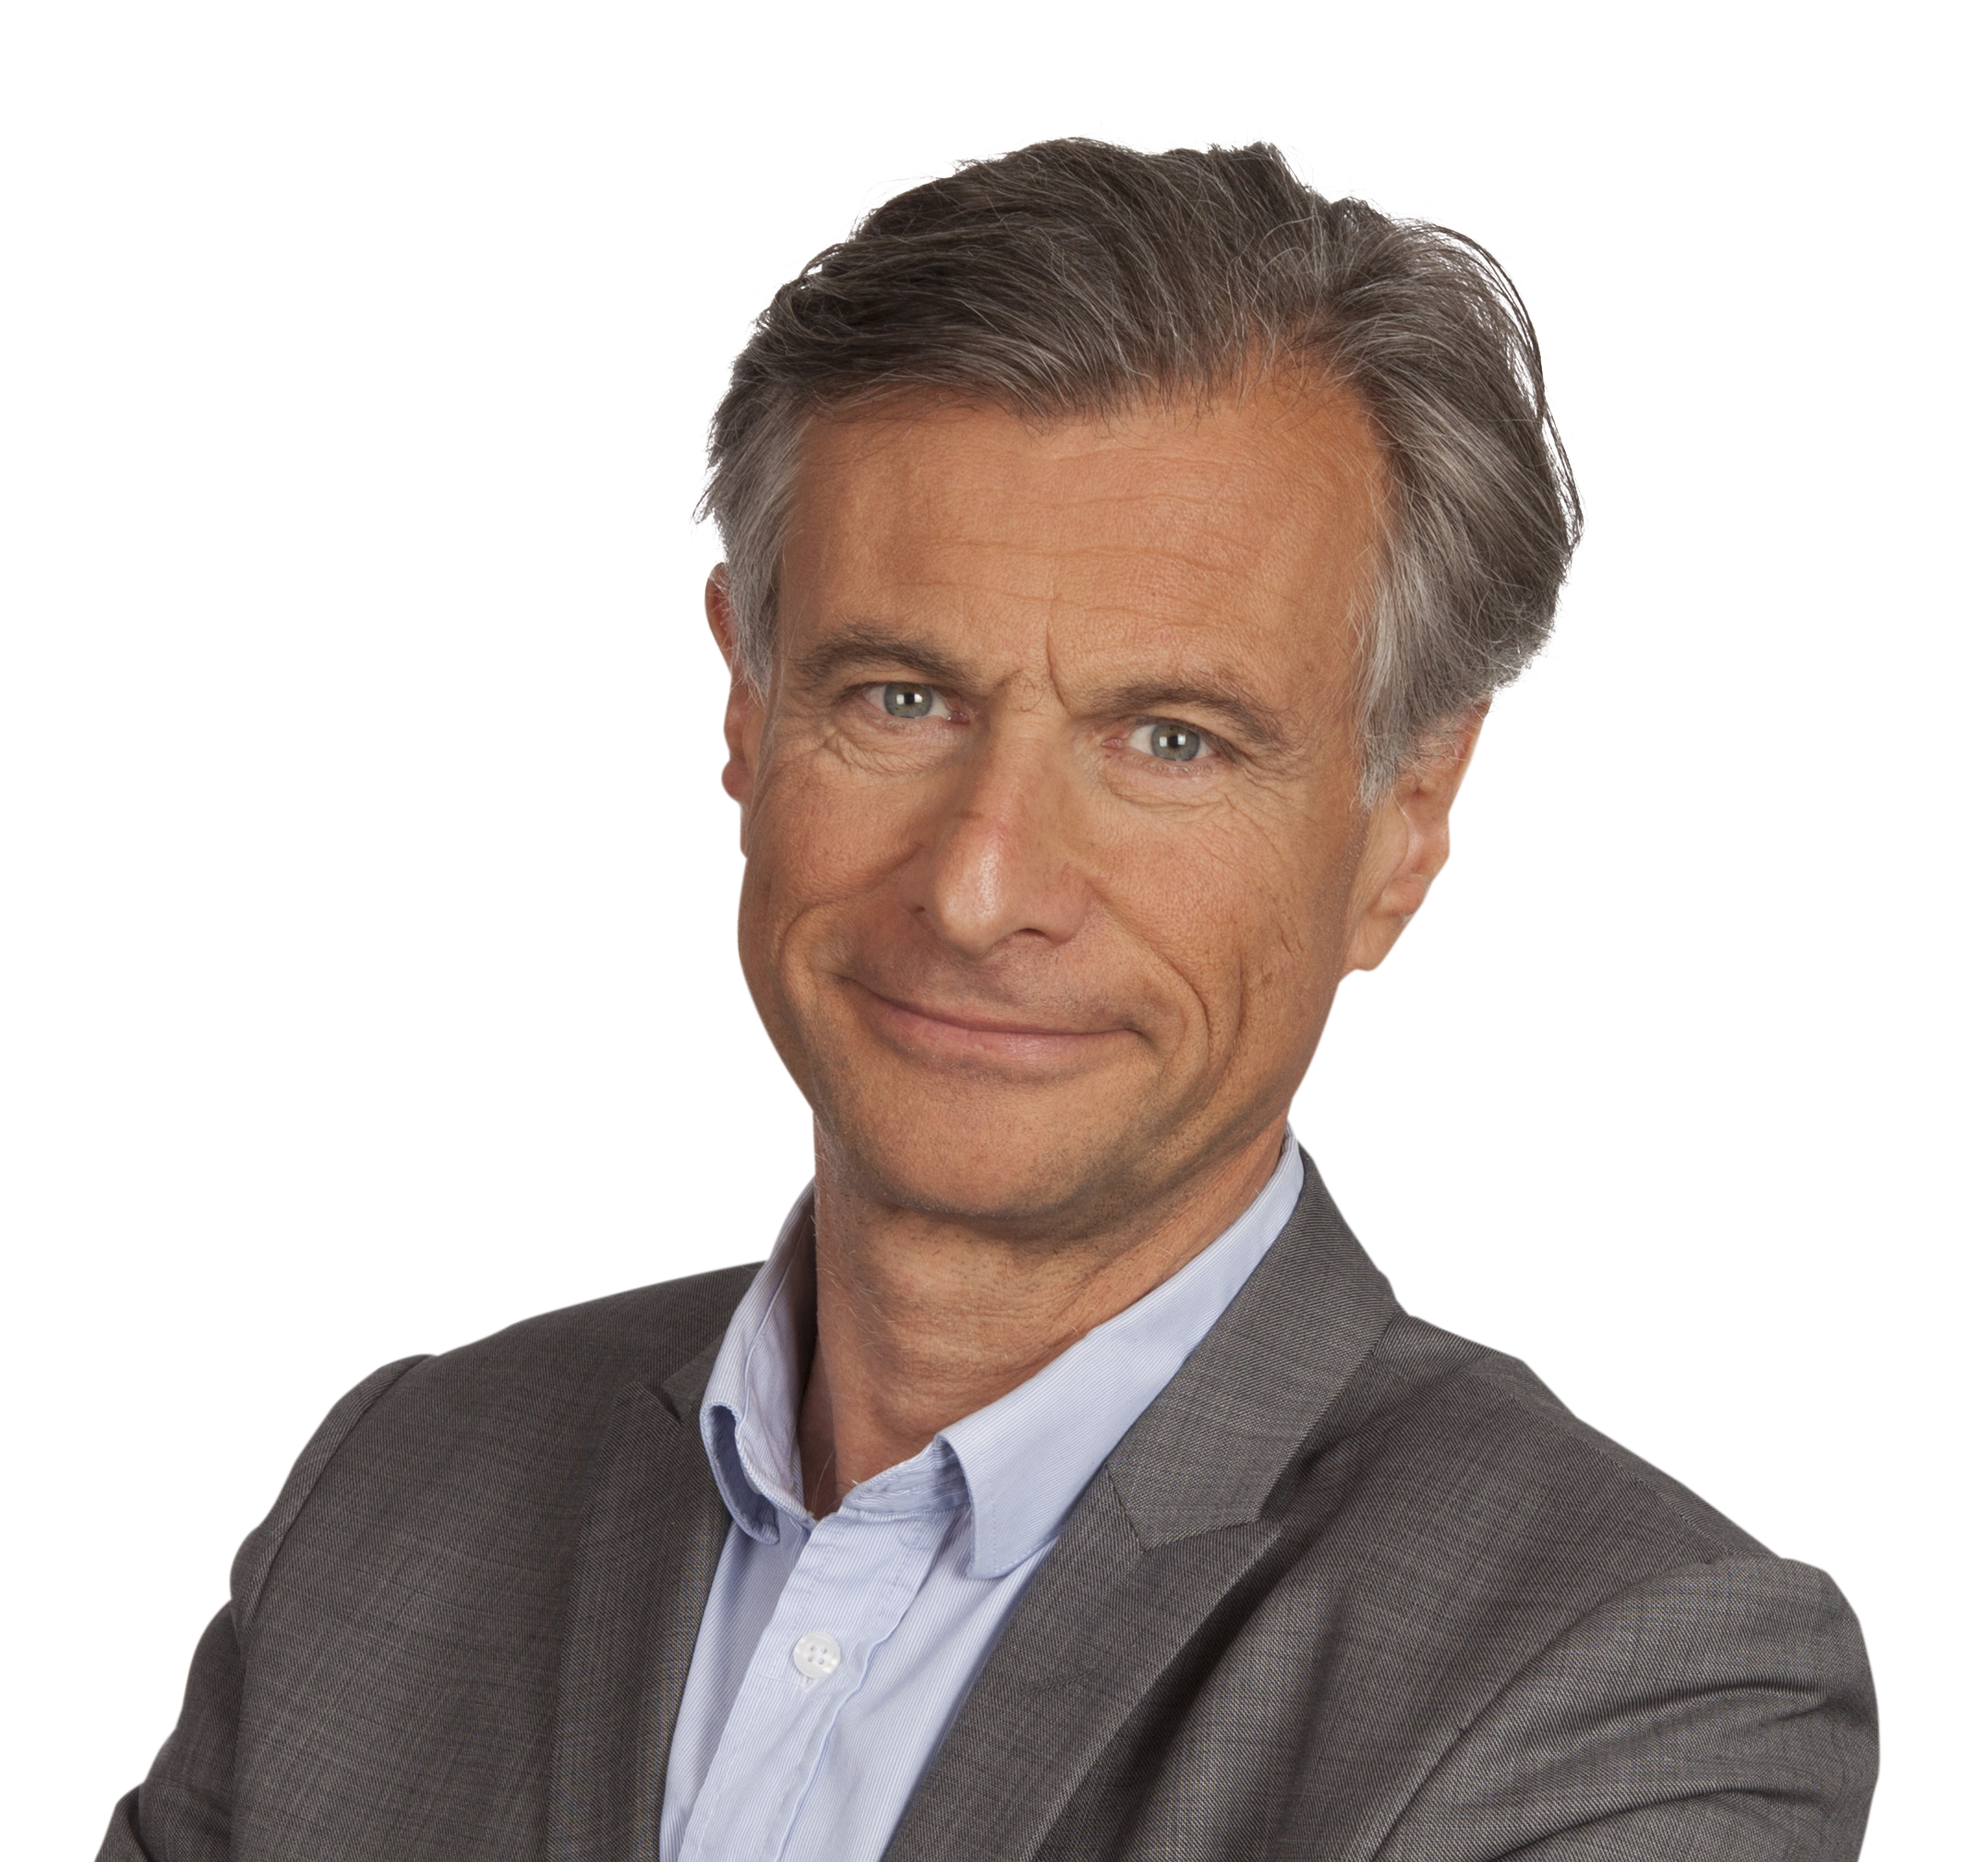 Thierry Wellhoff, CEO